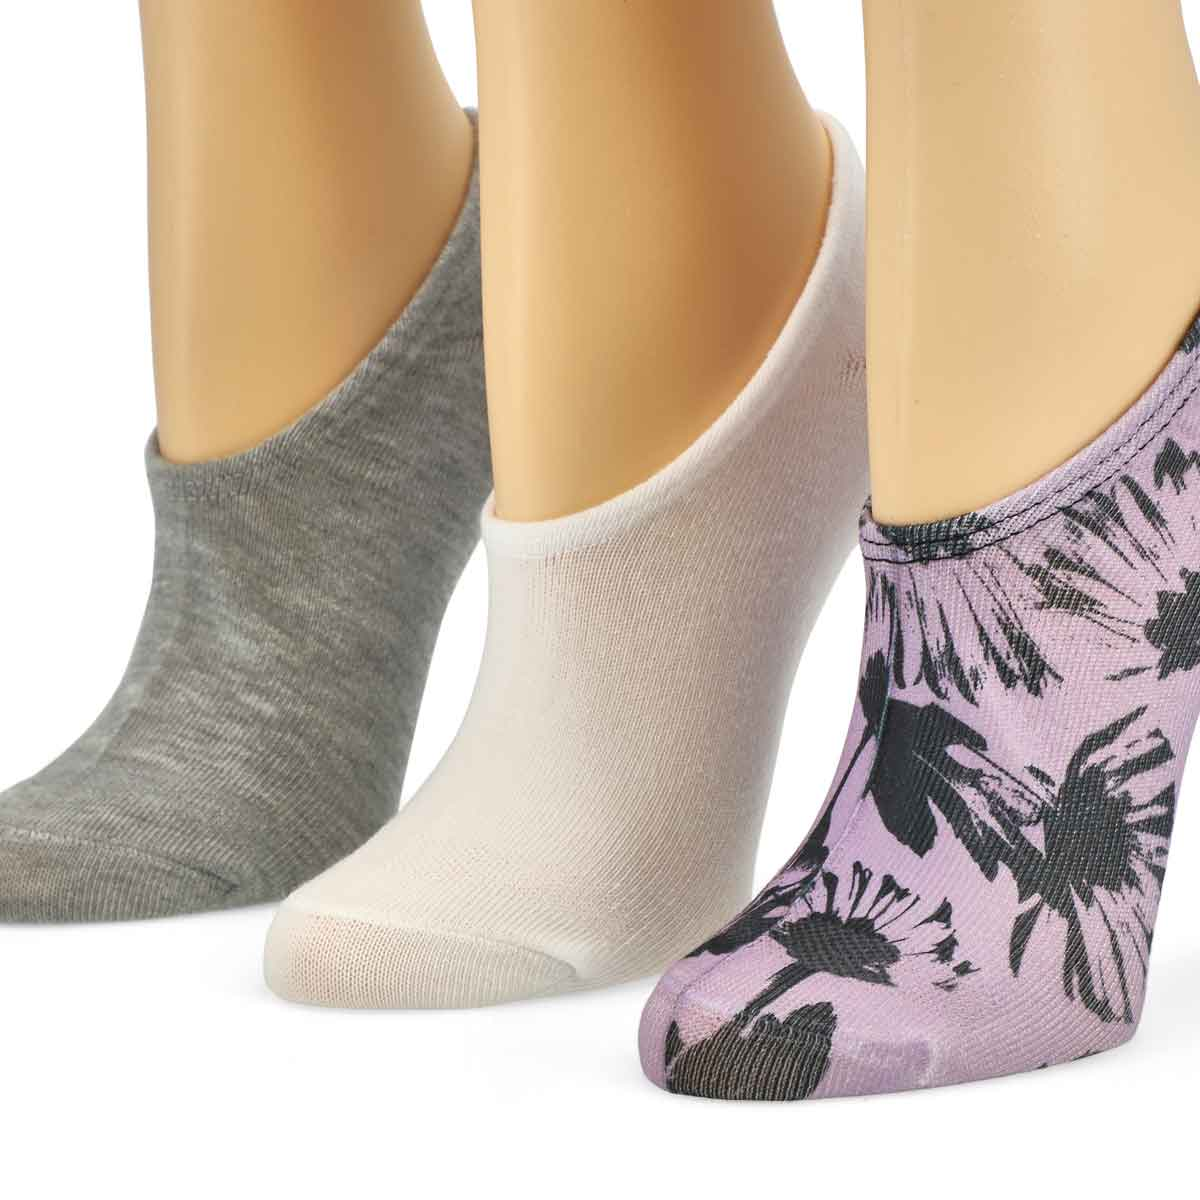 Women's MFC OX Tossed Flowers Liners - 3pk